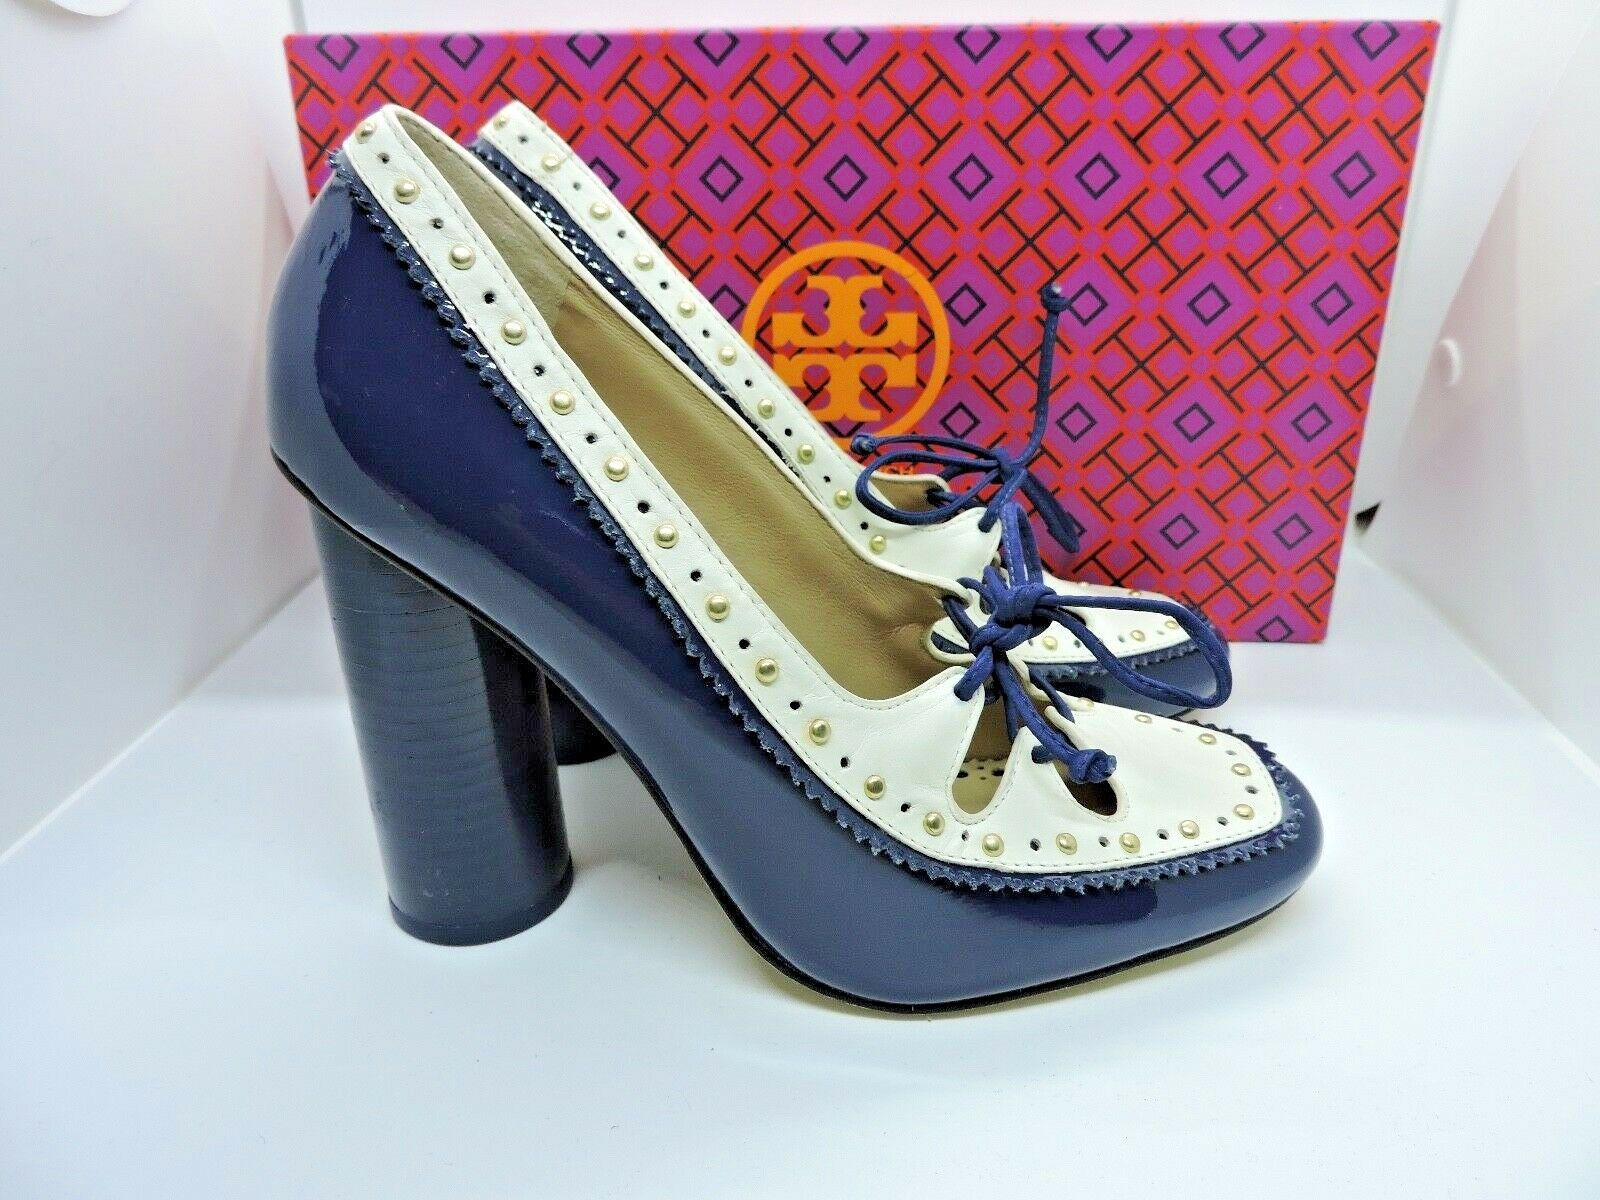 NIB  325 TORY BURCH CAMBRIDGE 110MM NAVY blueE PATENT LEATHER LACE UP PUMP 5.5